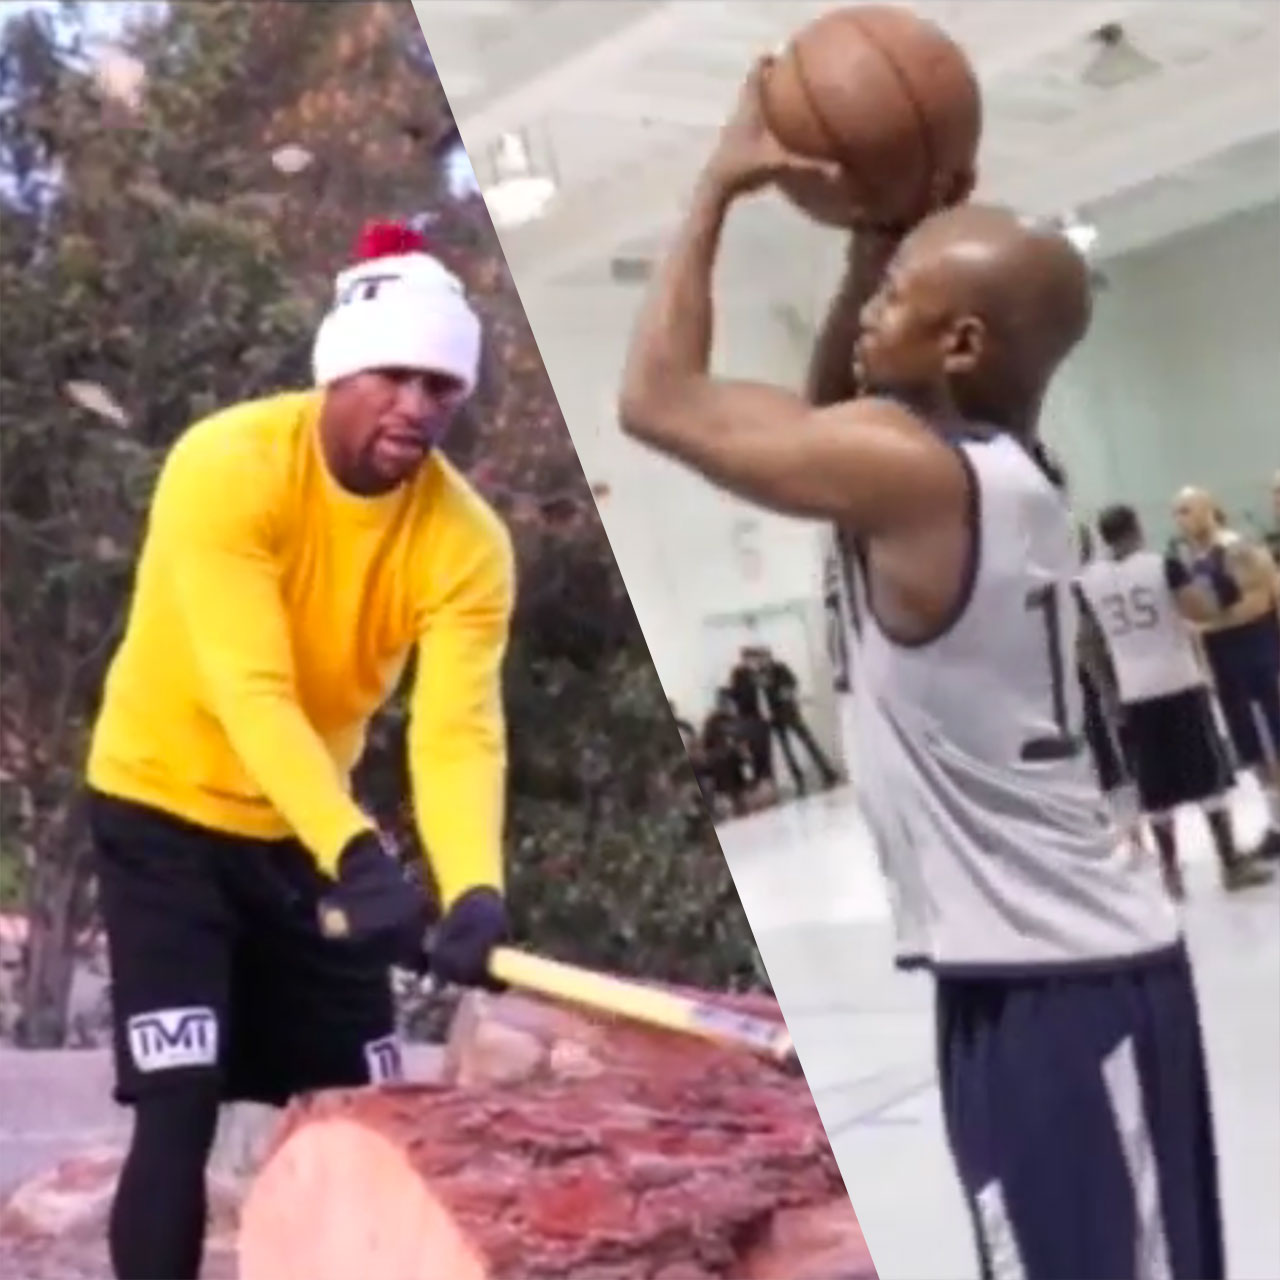 Flyod Mayweather training camp includes chopping wood and basketball